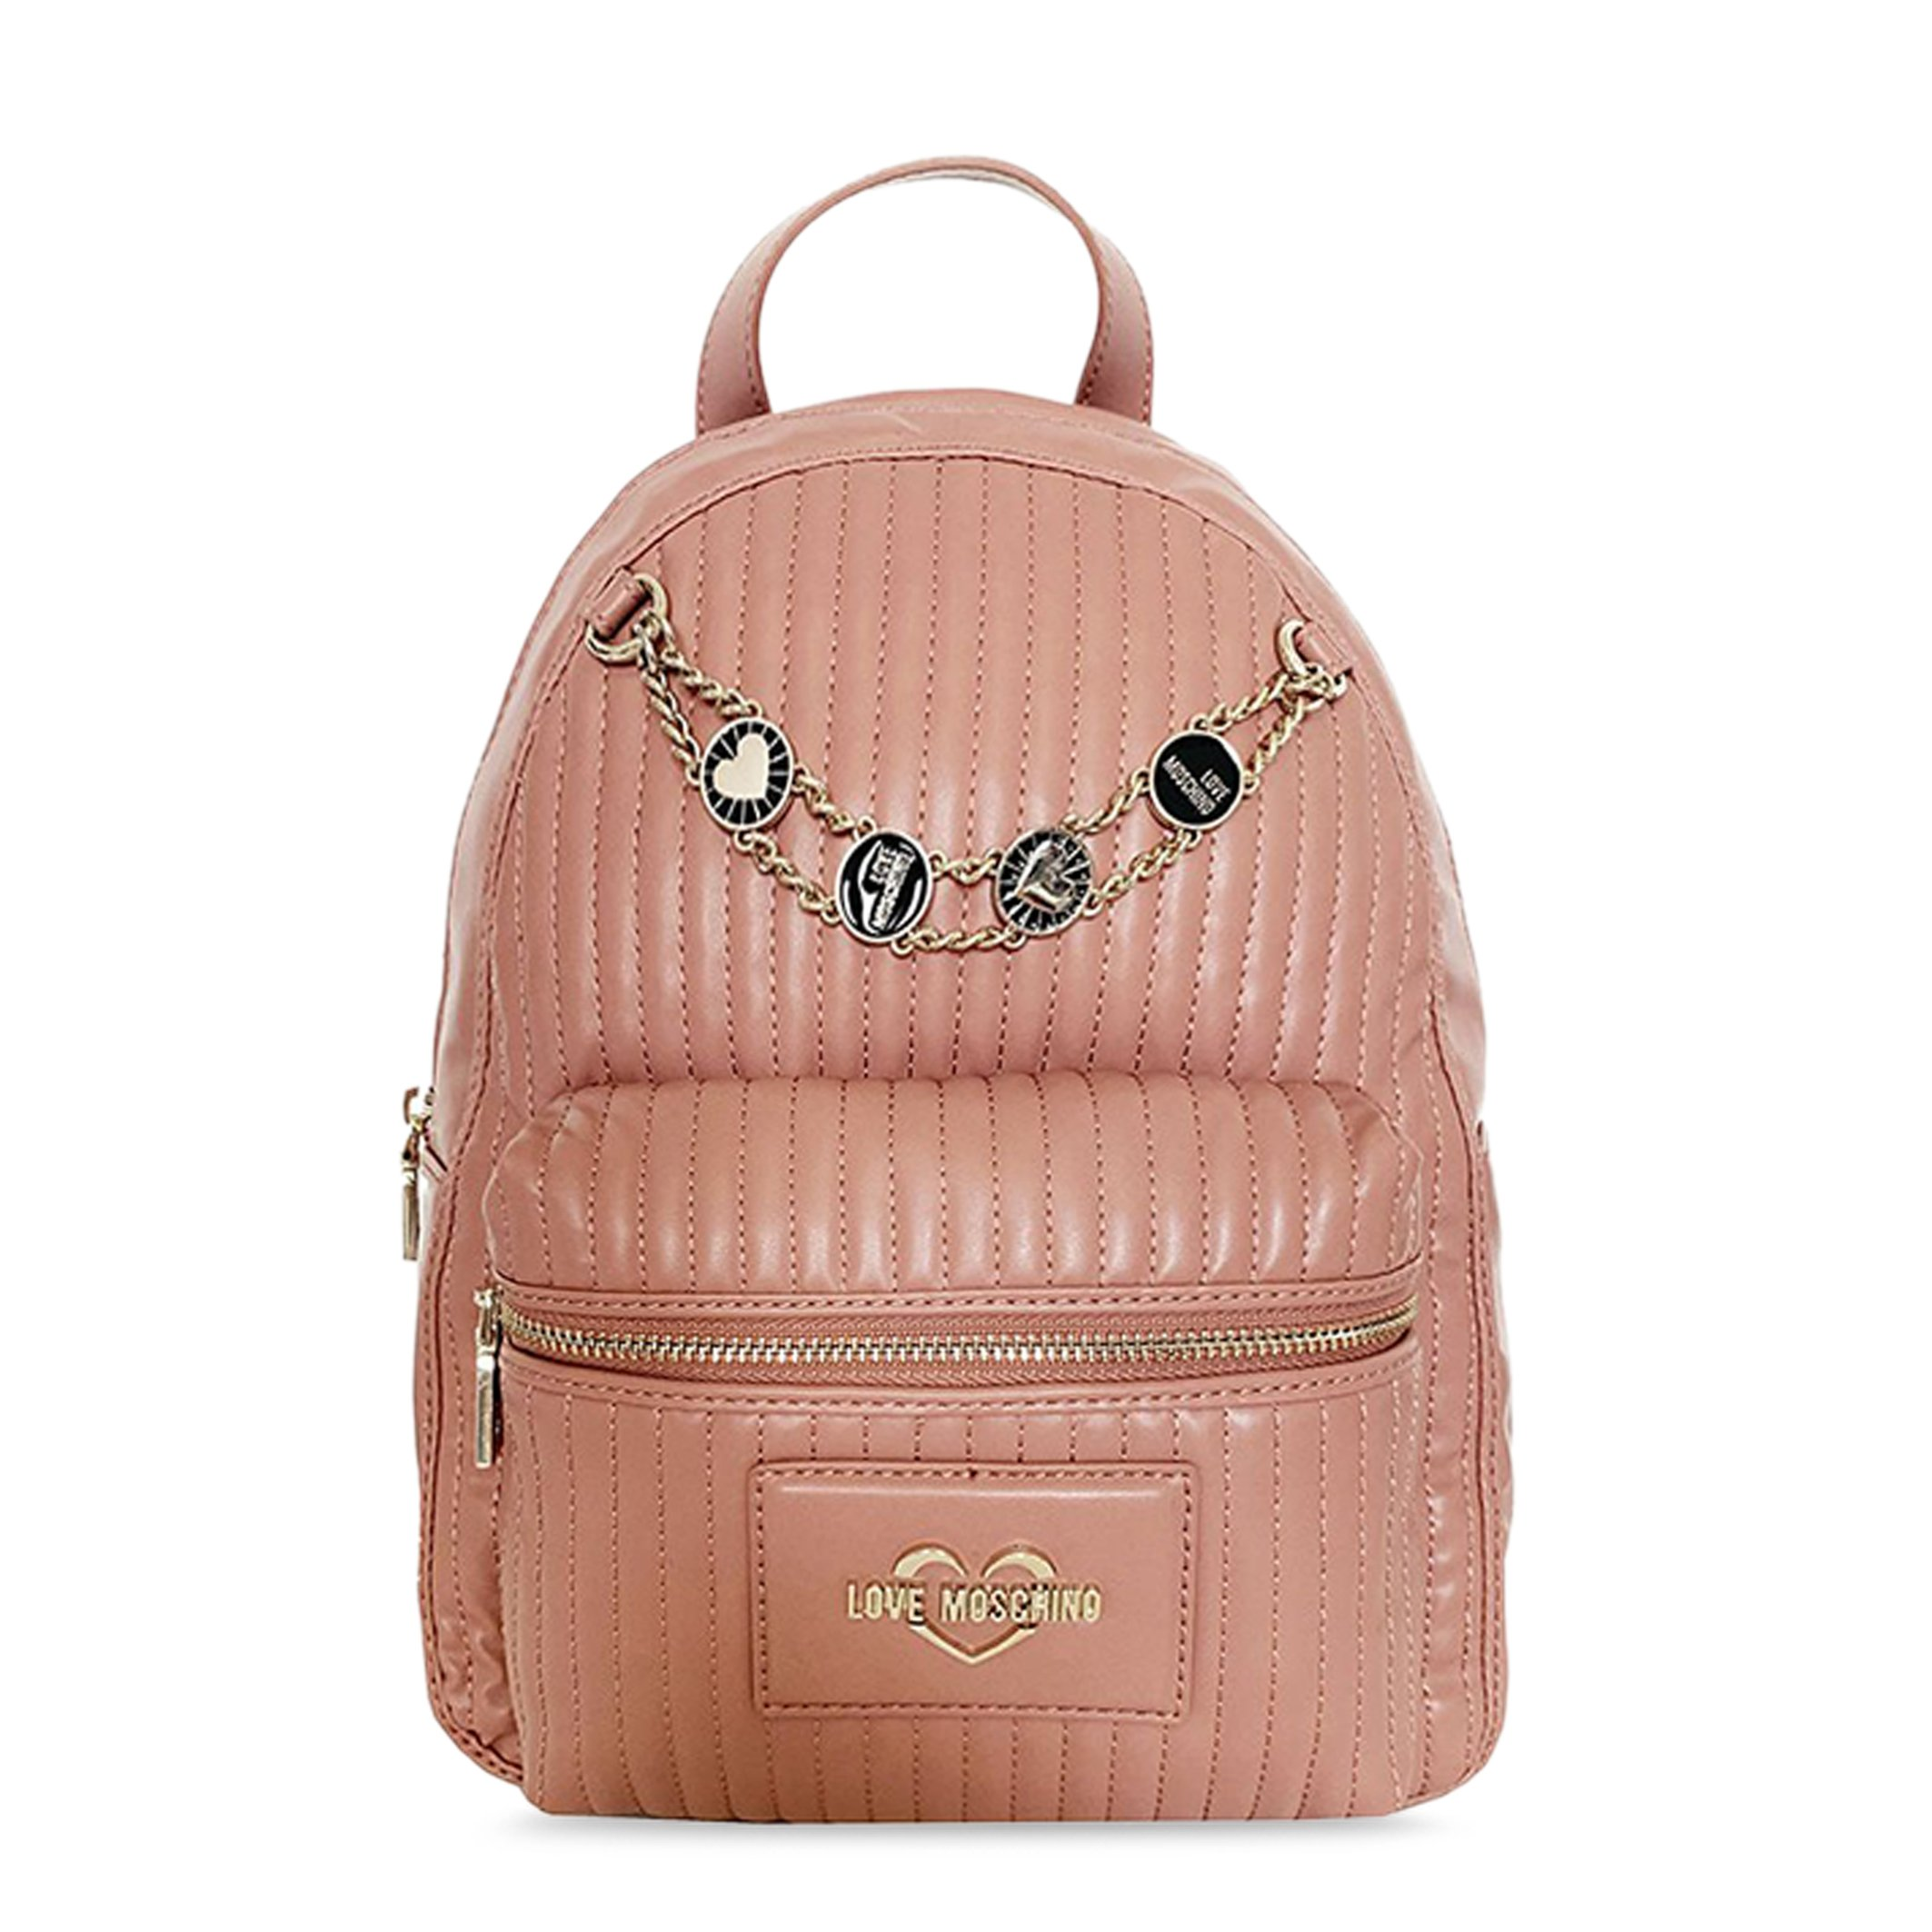 Love Moschino Women's Backpack Various Colours JC4142PP1DLB0 - pink NOSIZE